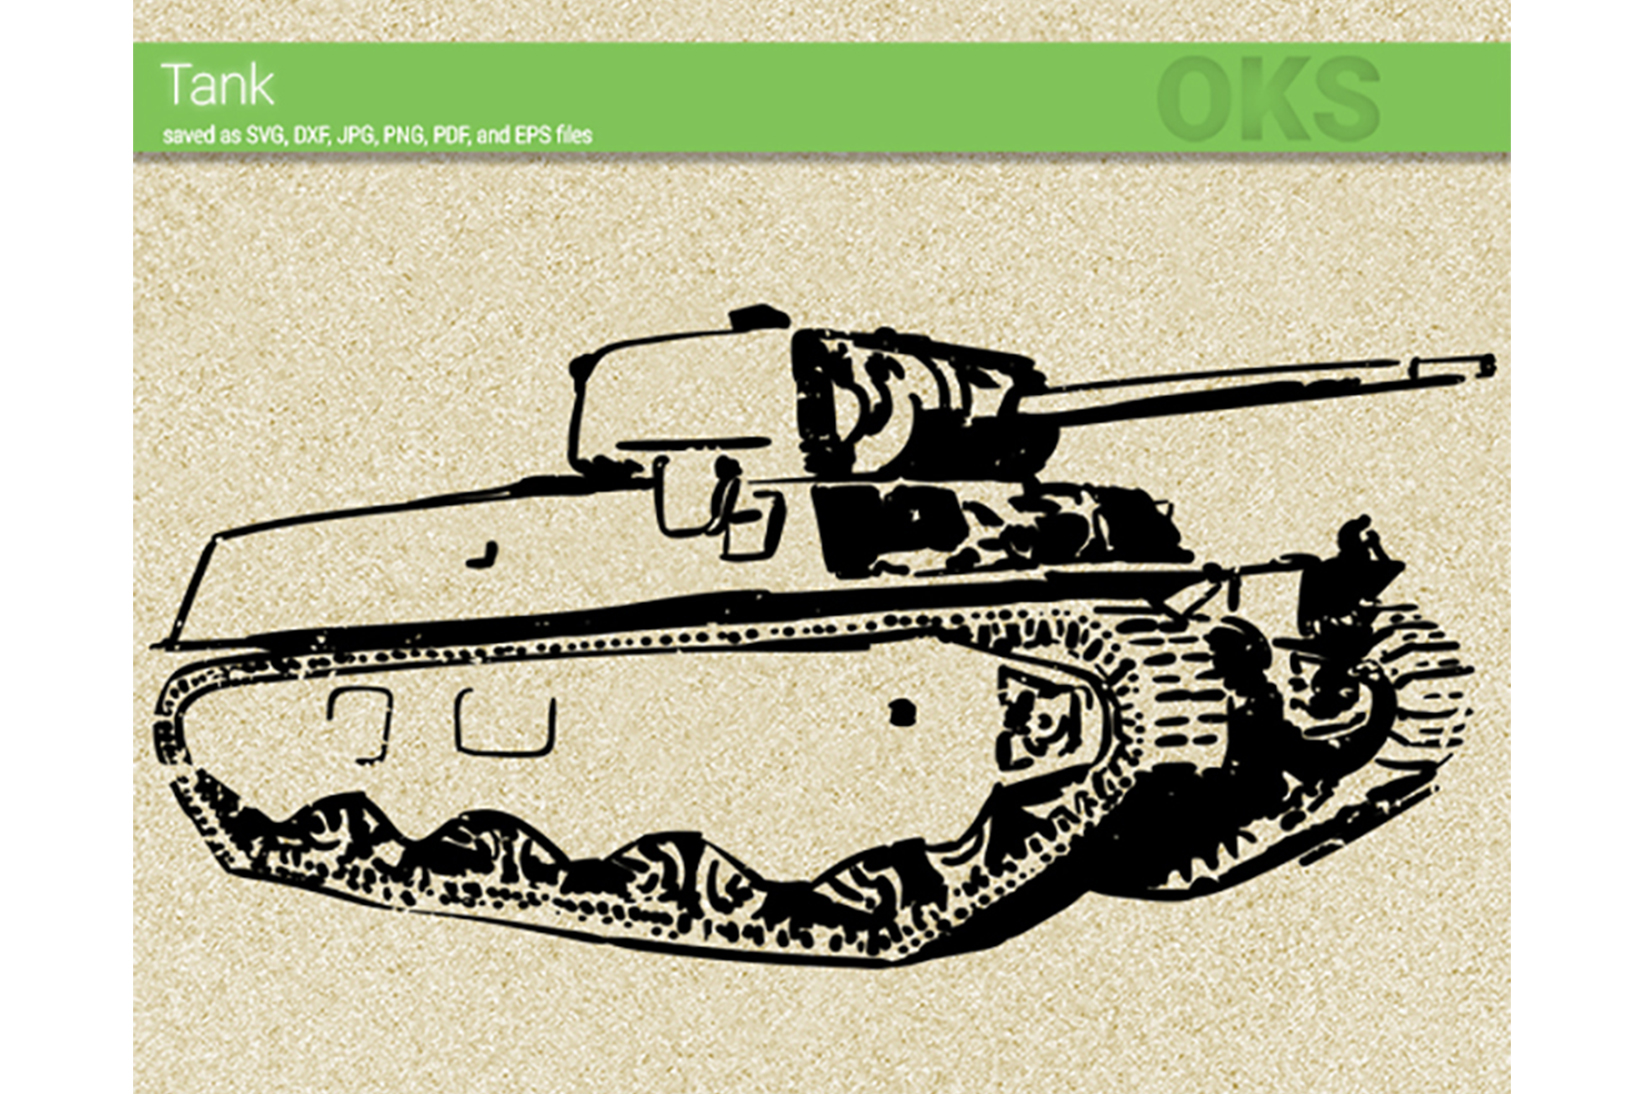 Download Free Tank Svg Vector Graphic By Crafteroks Creative Fabrica for Cricut Explore, Silhouette and other cutting machines.